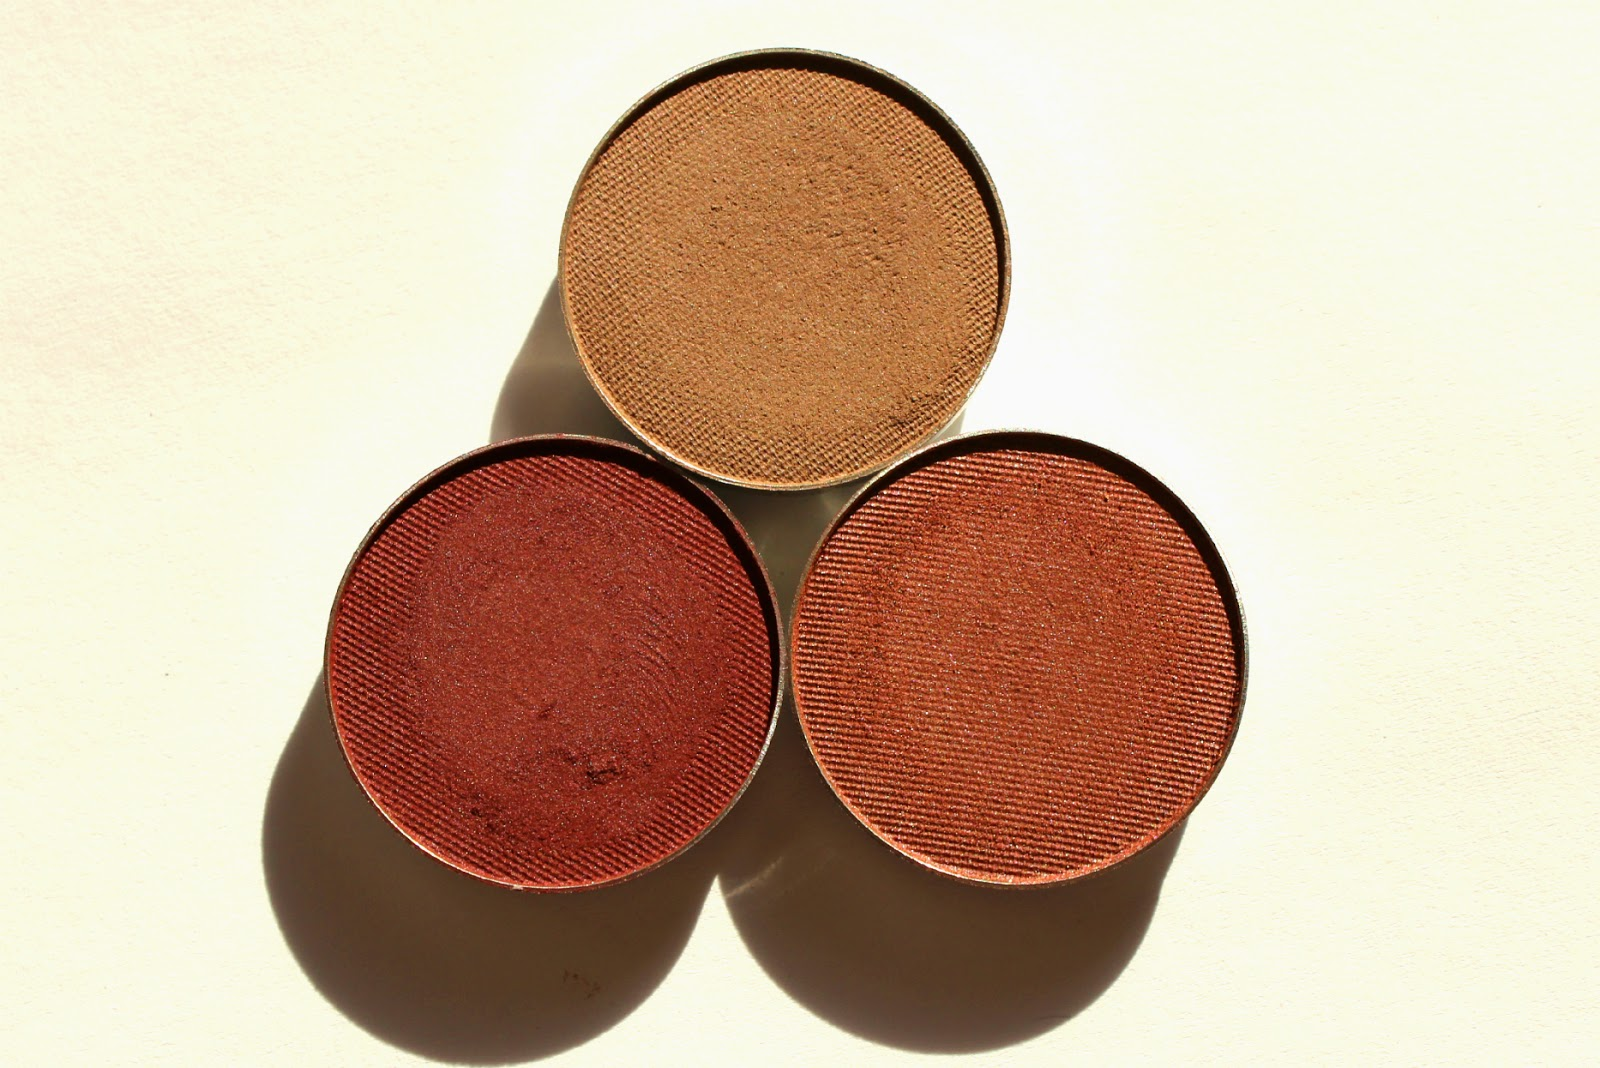 Makeup Geek Barcelona Beach, Bitten, Country Girl Eyeshadows Review & Swatches